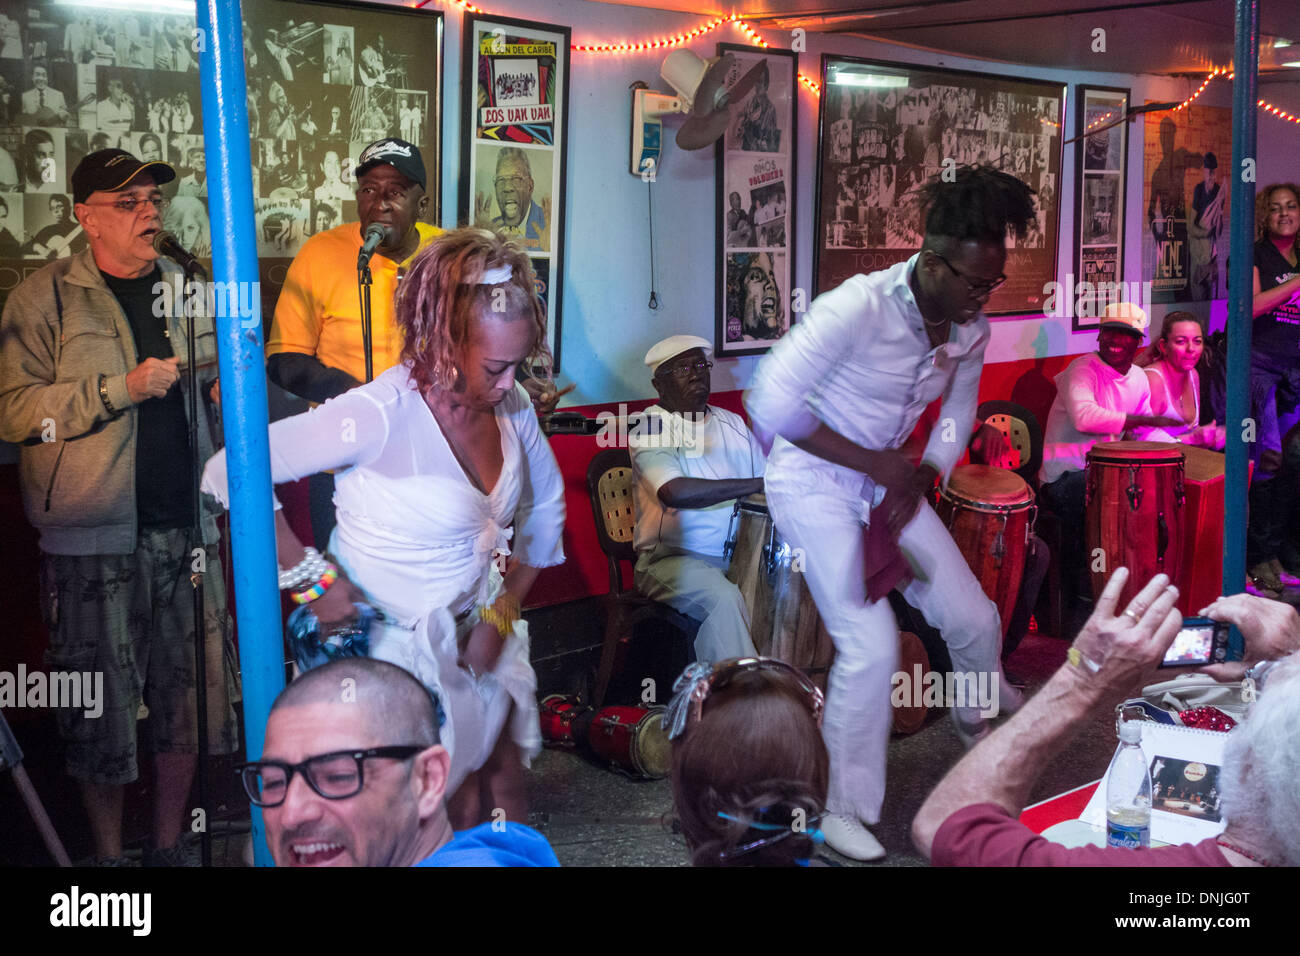 MUSICIANS AND DANCERS IN A MUSICAL BAR, CALLE SAN MIGUEL, HABANA CENTRO, HAVANA, CUBA, THE CARIBBEAN - Stock Image